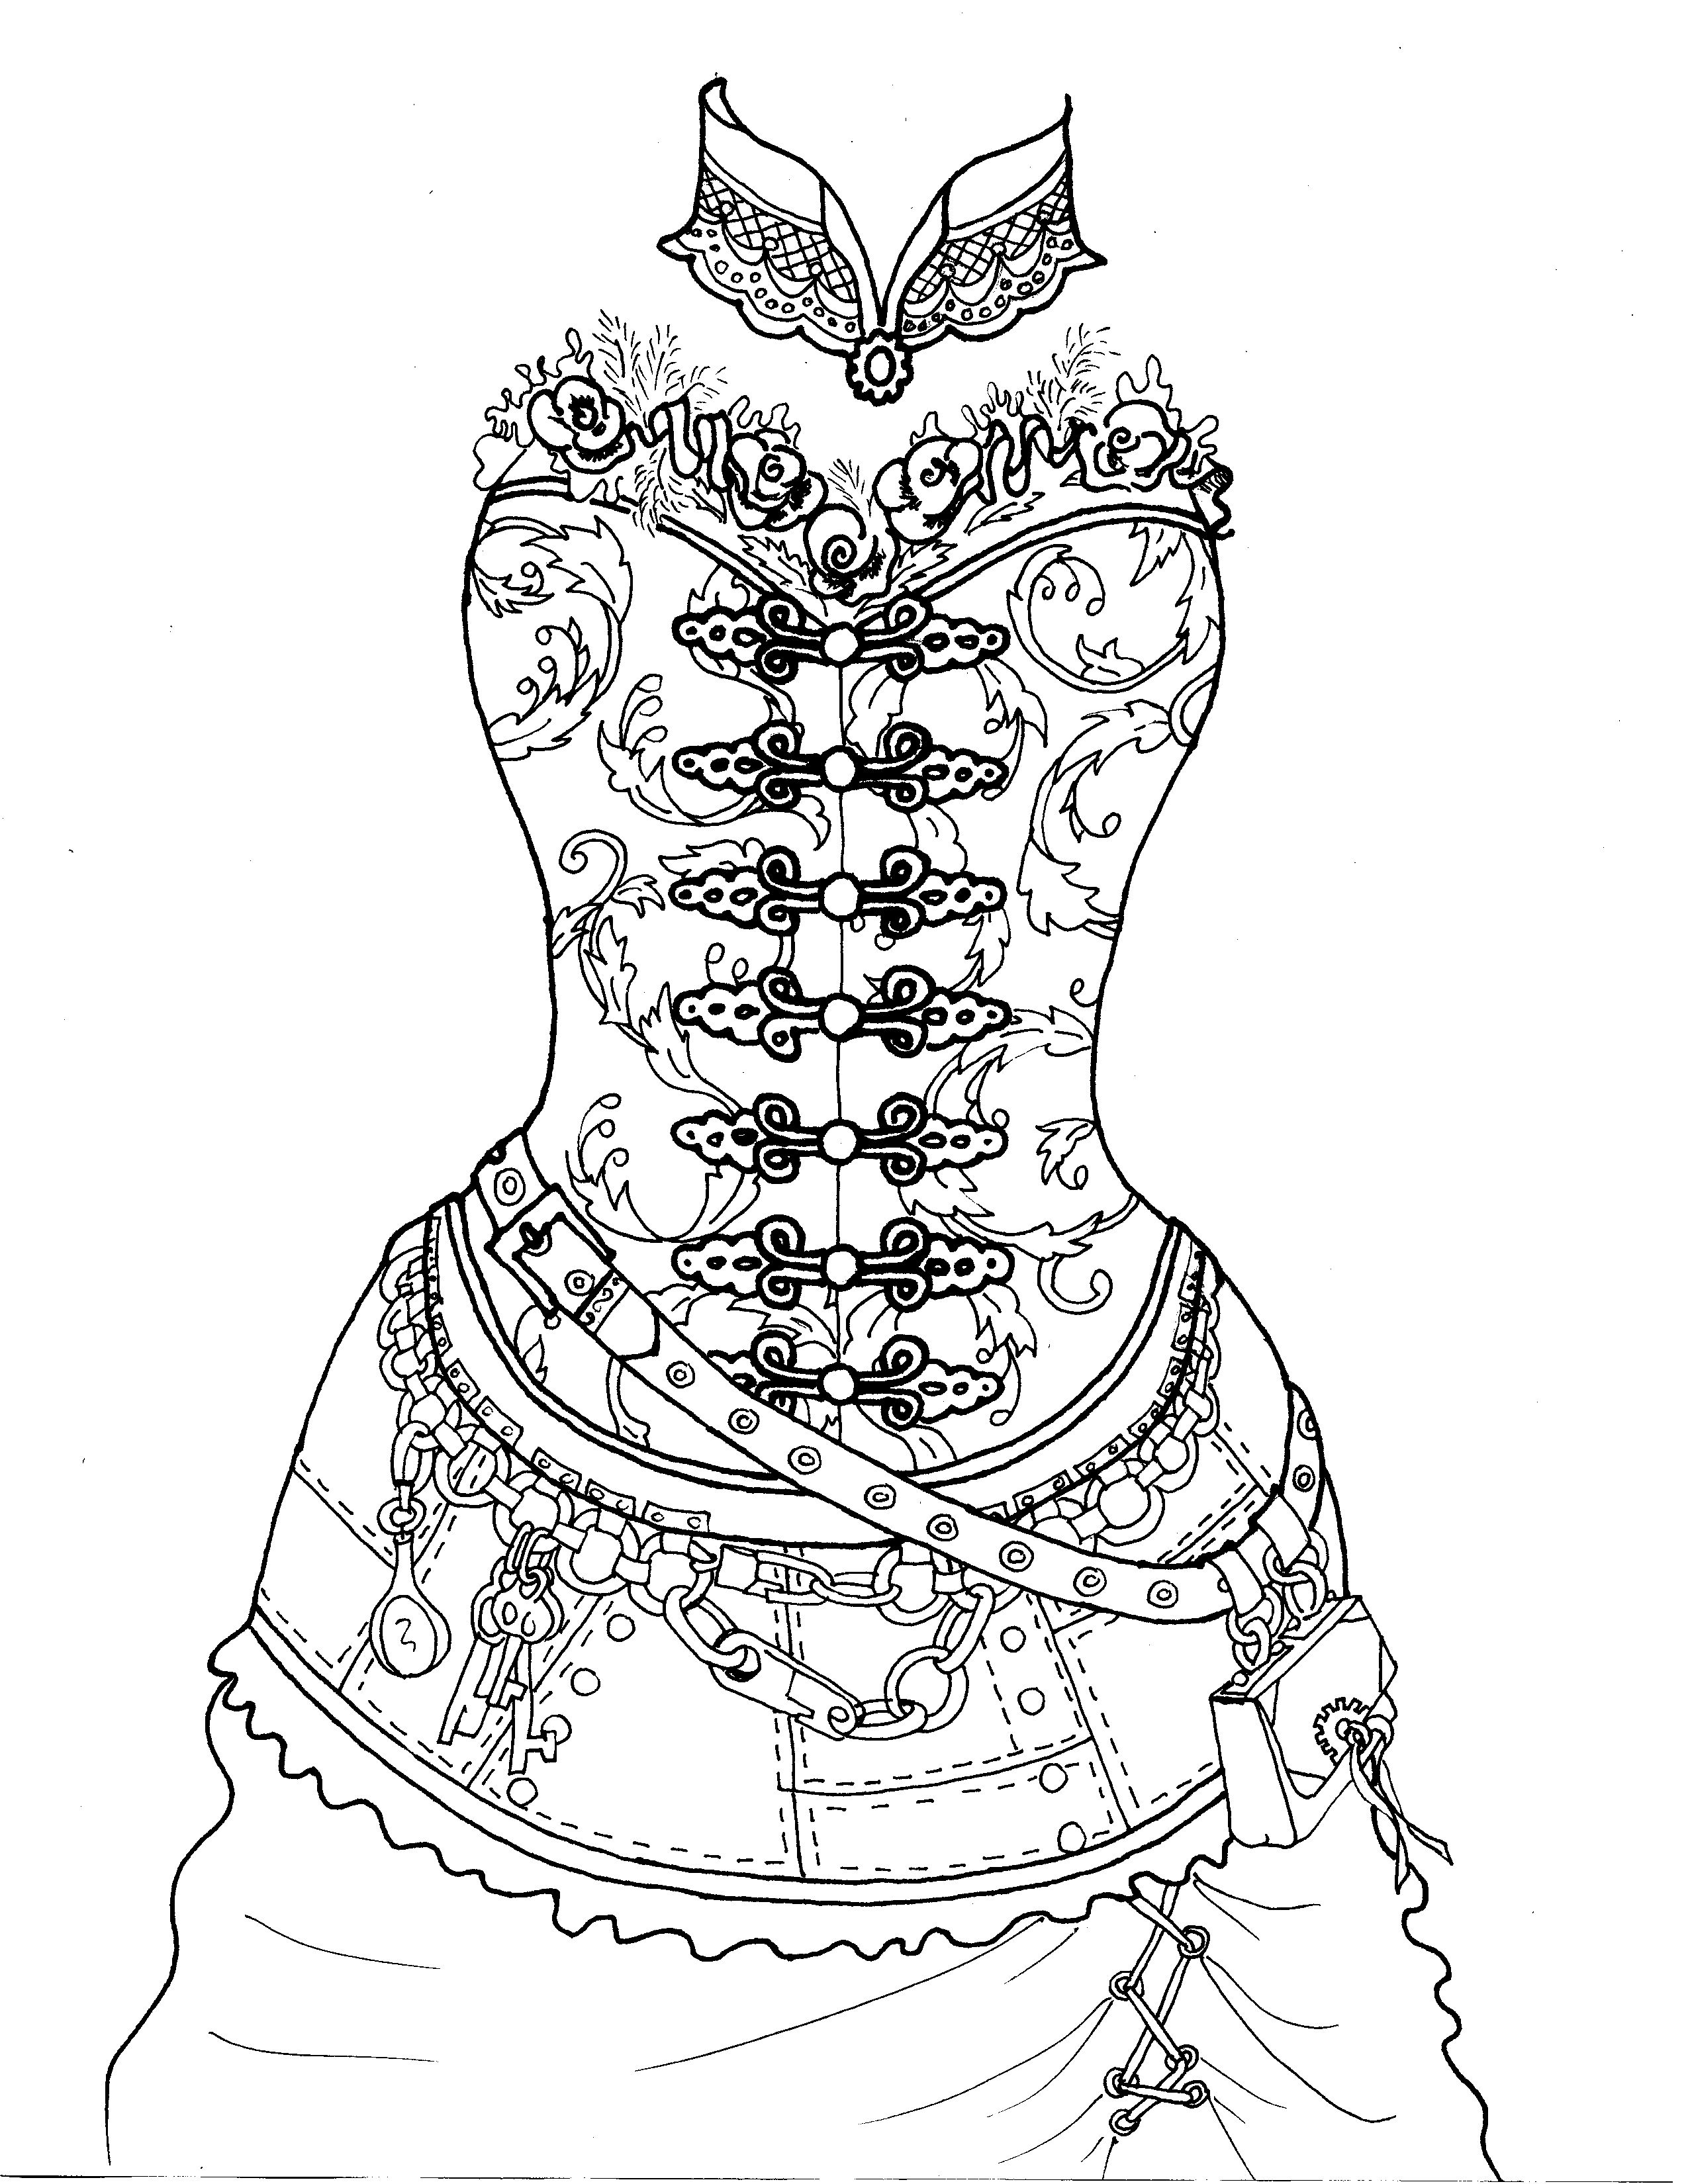 steampunk gothic fairy coloring pages pin by renee michelle moss rogers on gothic fairy fairy steampunk gothic fairy pages coloring